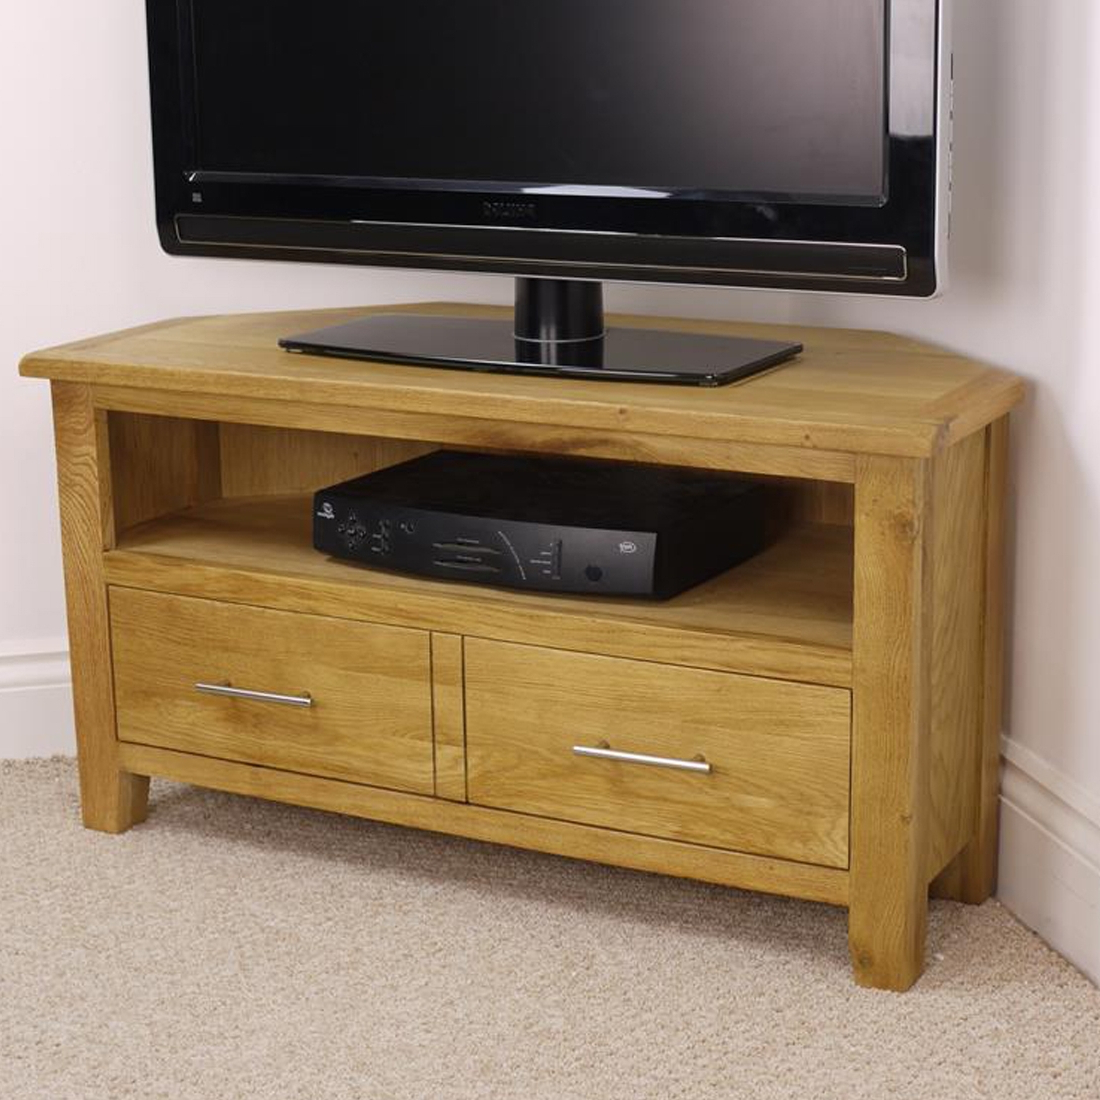 Favorite Corner Tv Stand And Its Benefits – Furnish Ideas Throughout Contemporary Oak Tv Stands (View 9 of 20)